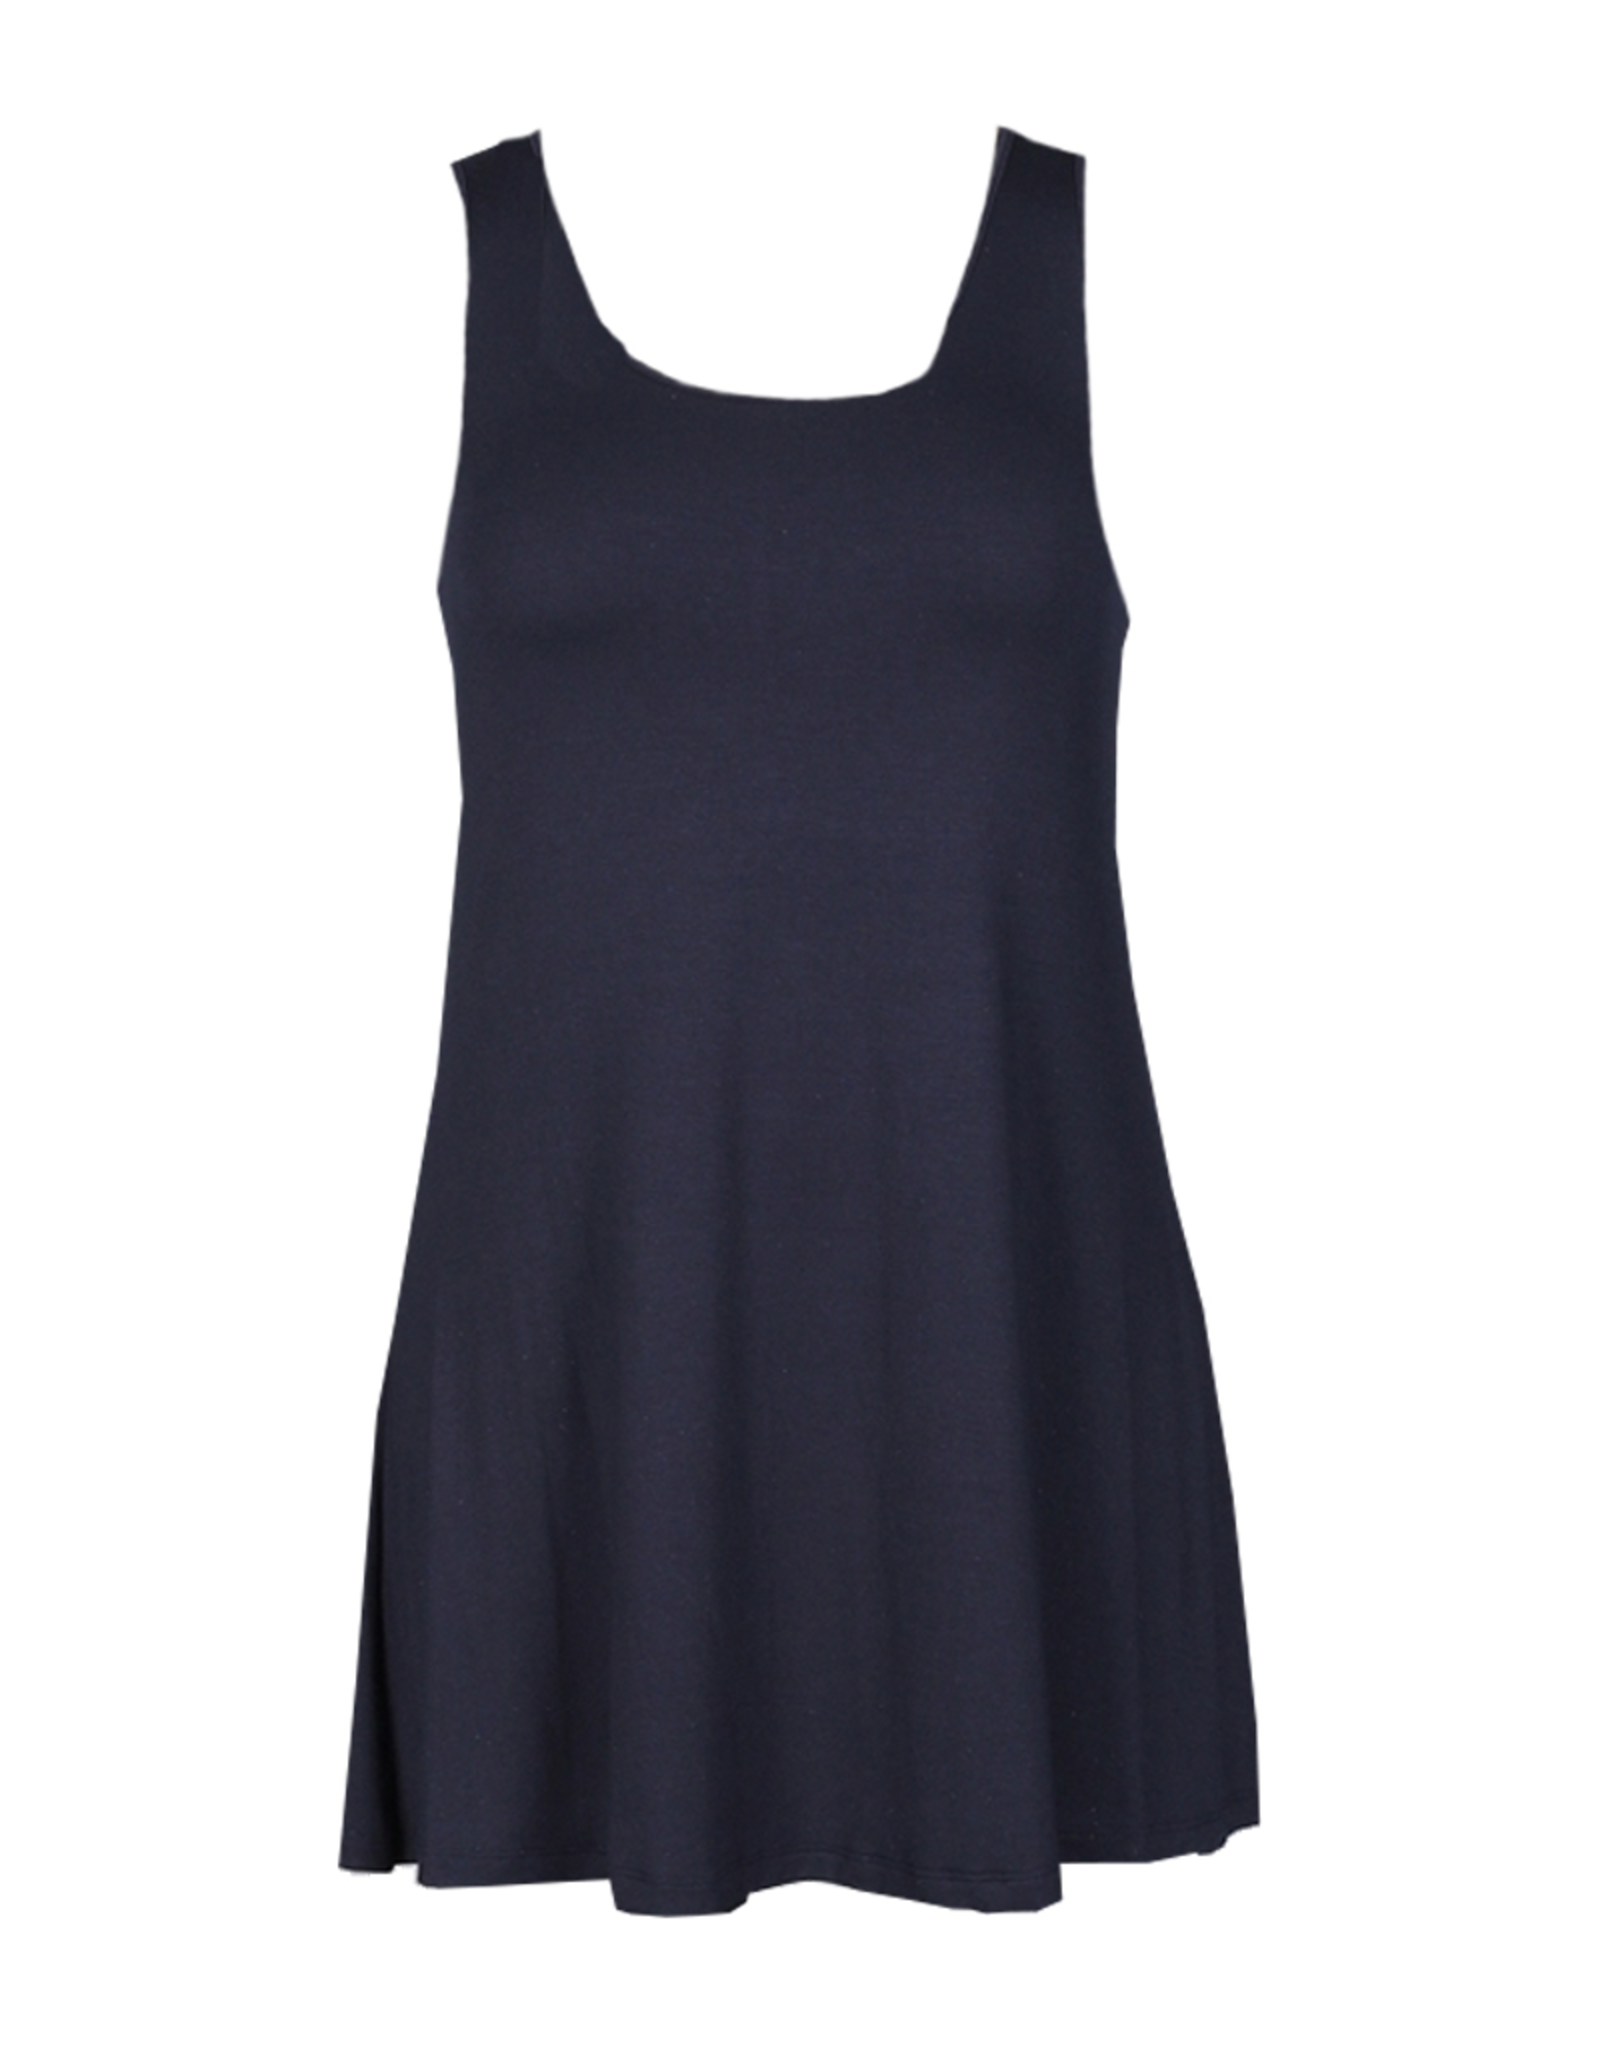 Comfy Sleeveless Scoop Neckline Tunic